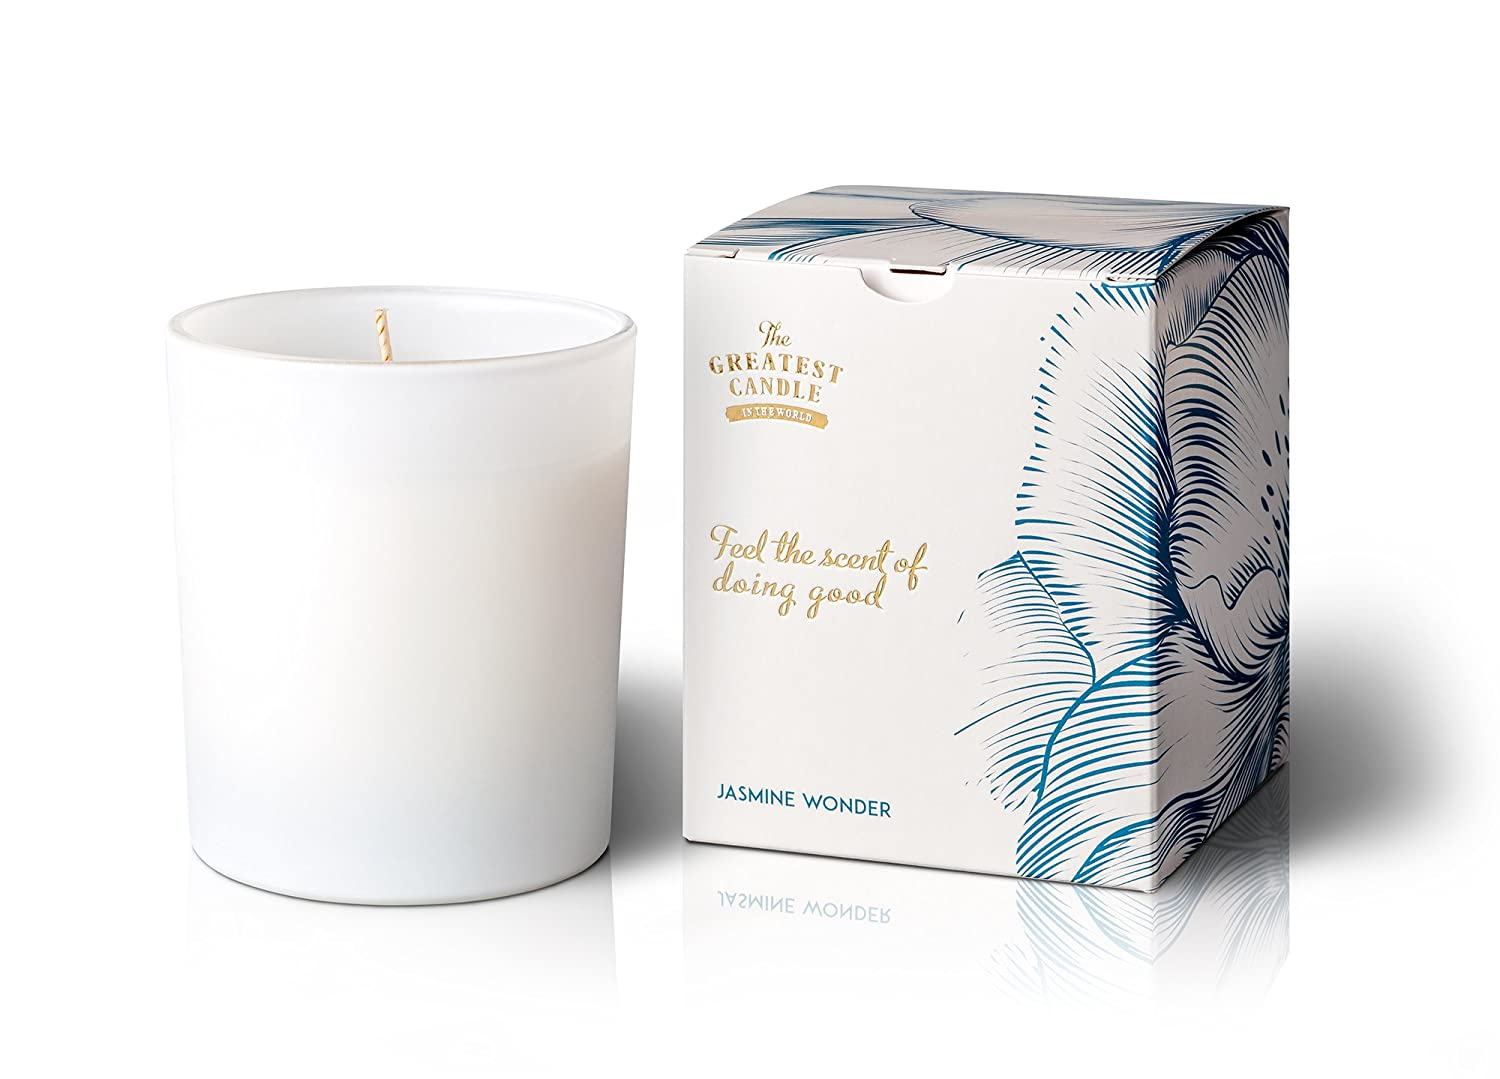 The Greatest Candle In The World Candela con Profumo di Jasmine Wonder, Cera vegetale e Vetro, Bianco, 8.5 x 8.5 x 10 cm O2W S.A. RMGW0335